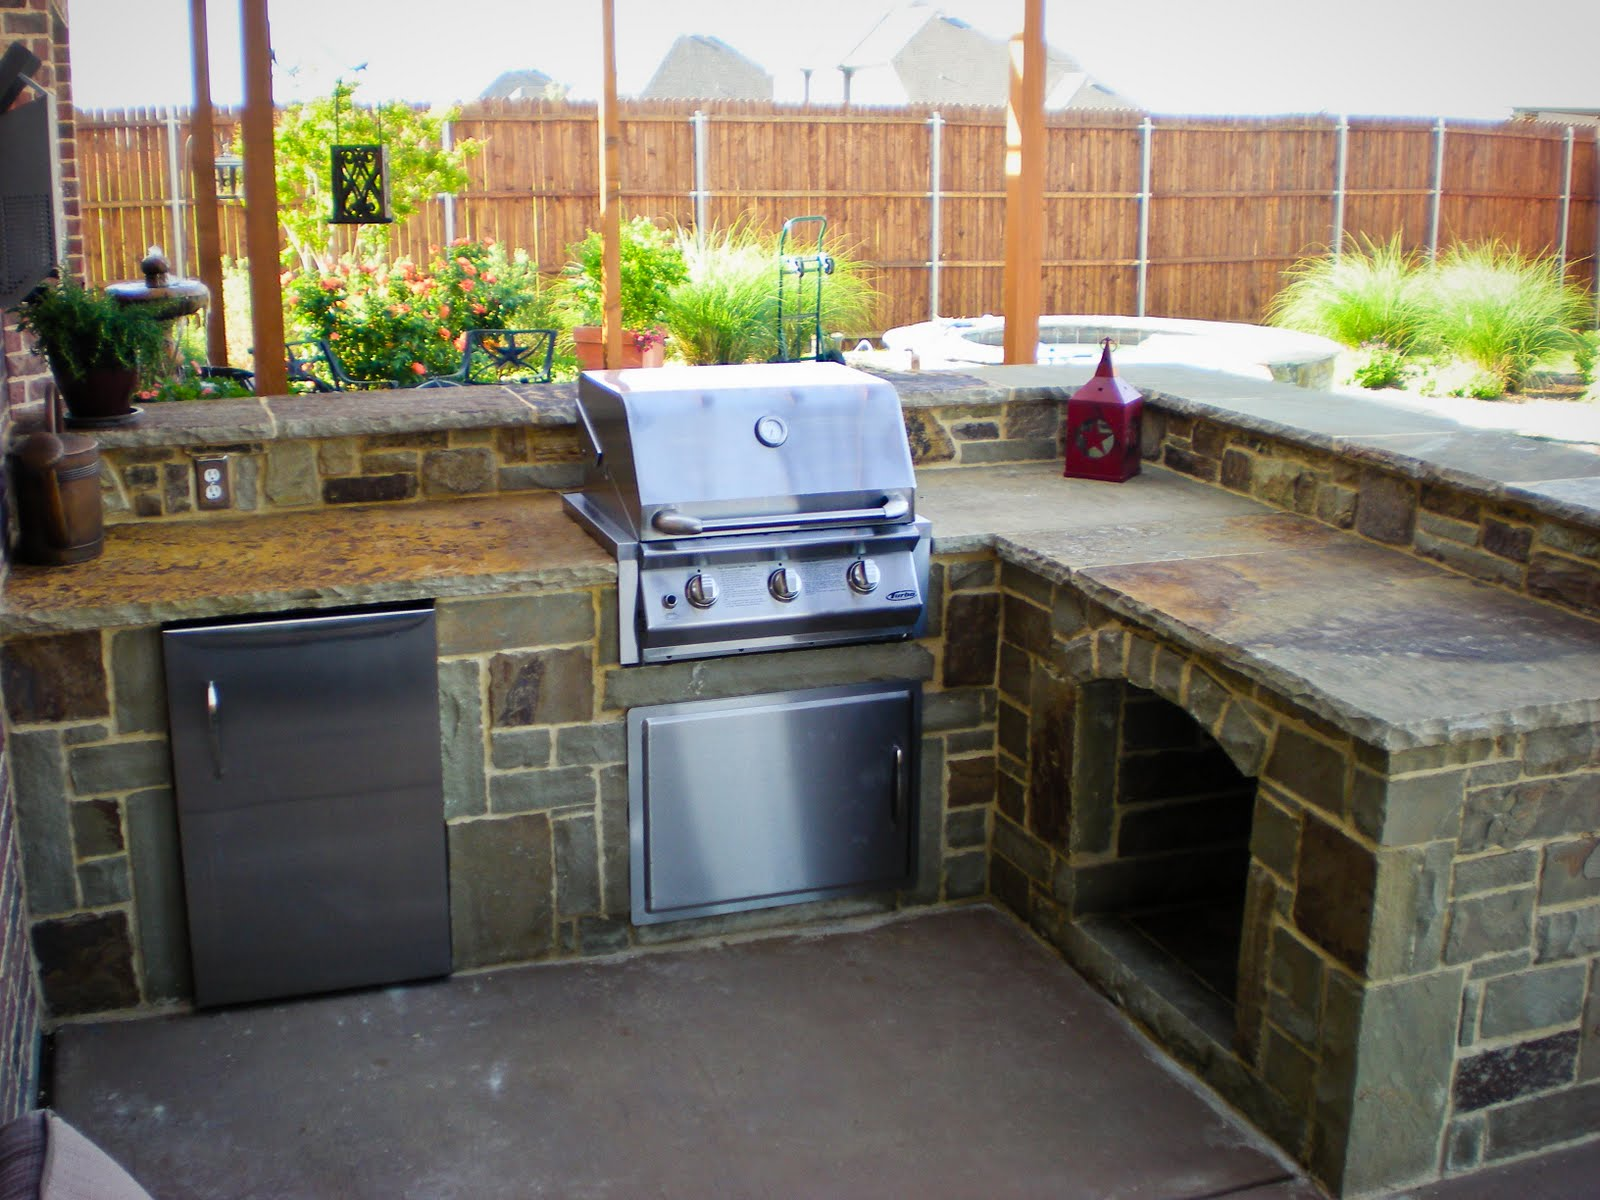 Texas lawn and stone outdoor kitchen forney tx for Outdoor kitchen ideas plans